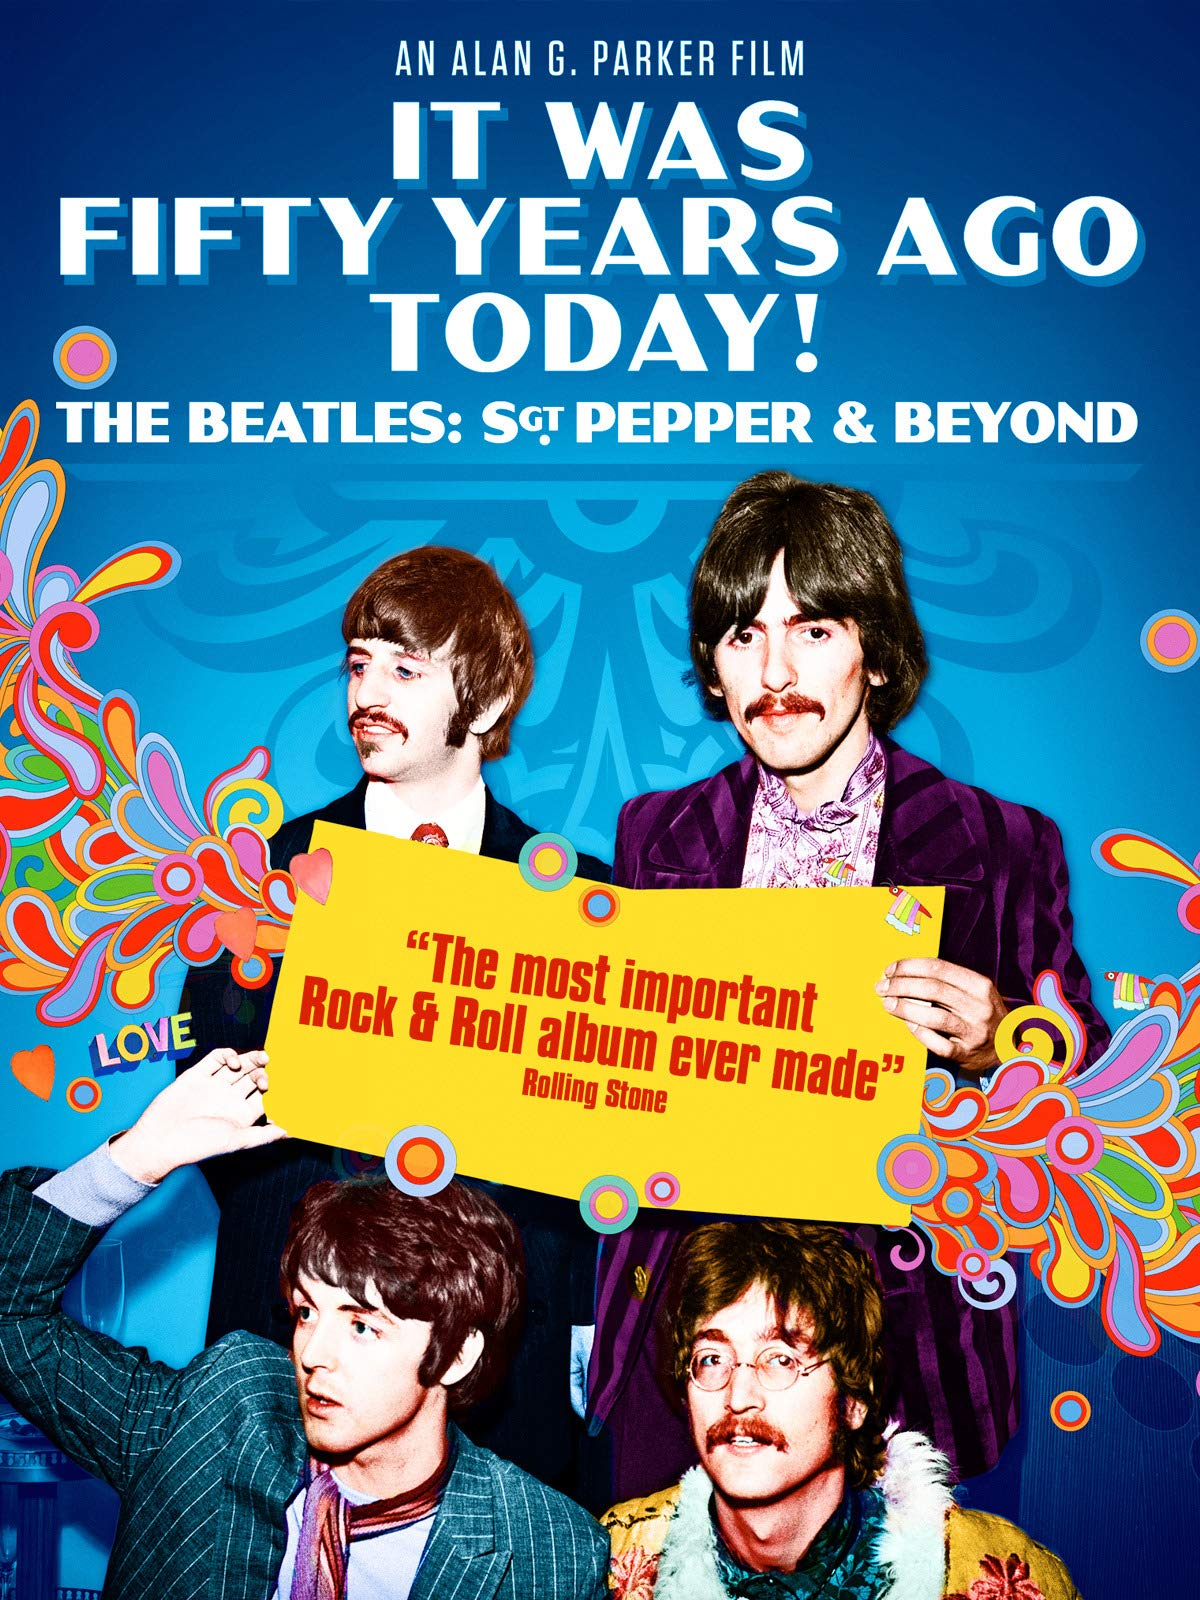 It Was 50 Years Ago Today! The Beatles: Sgt Pepper & Beyond